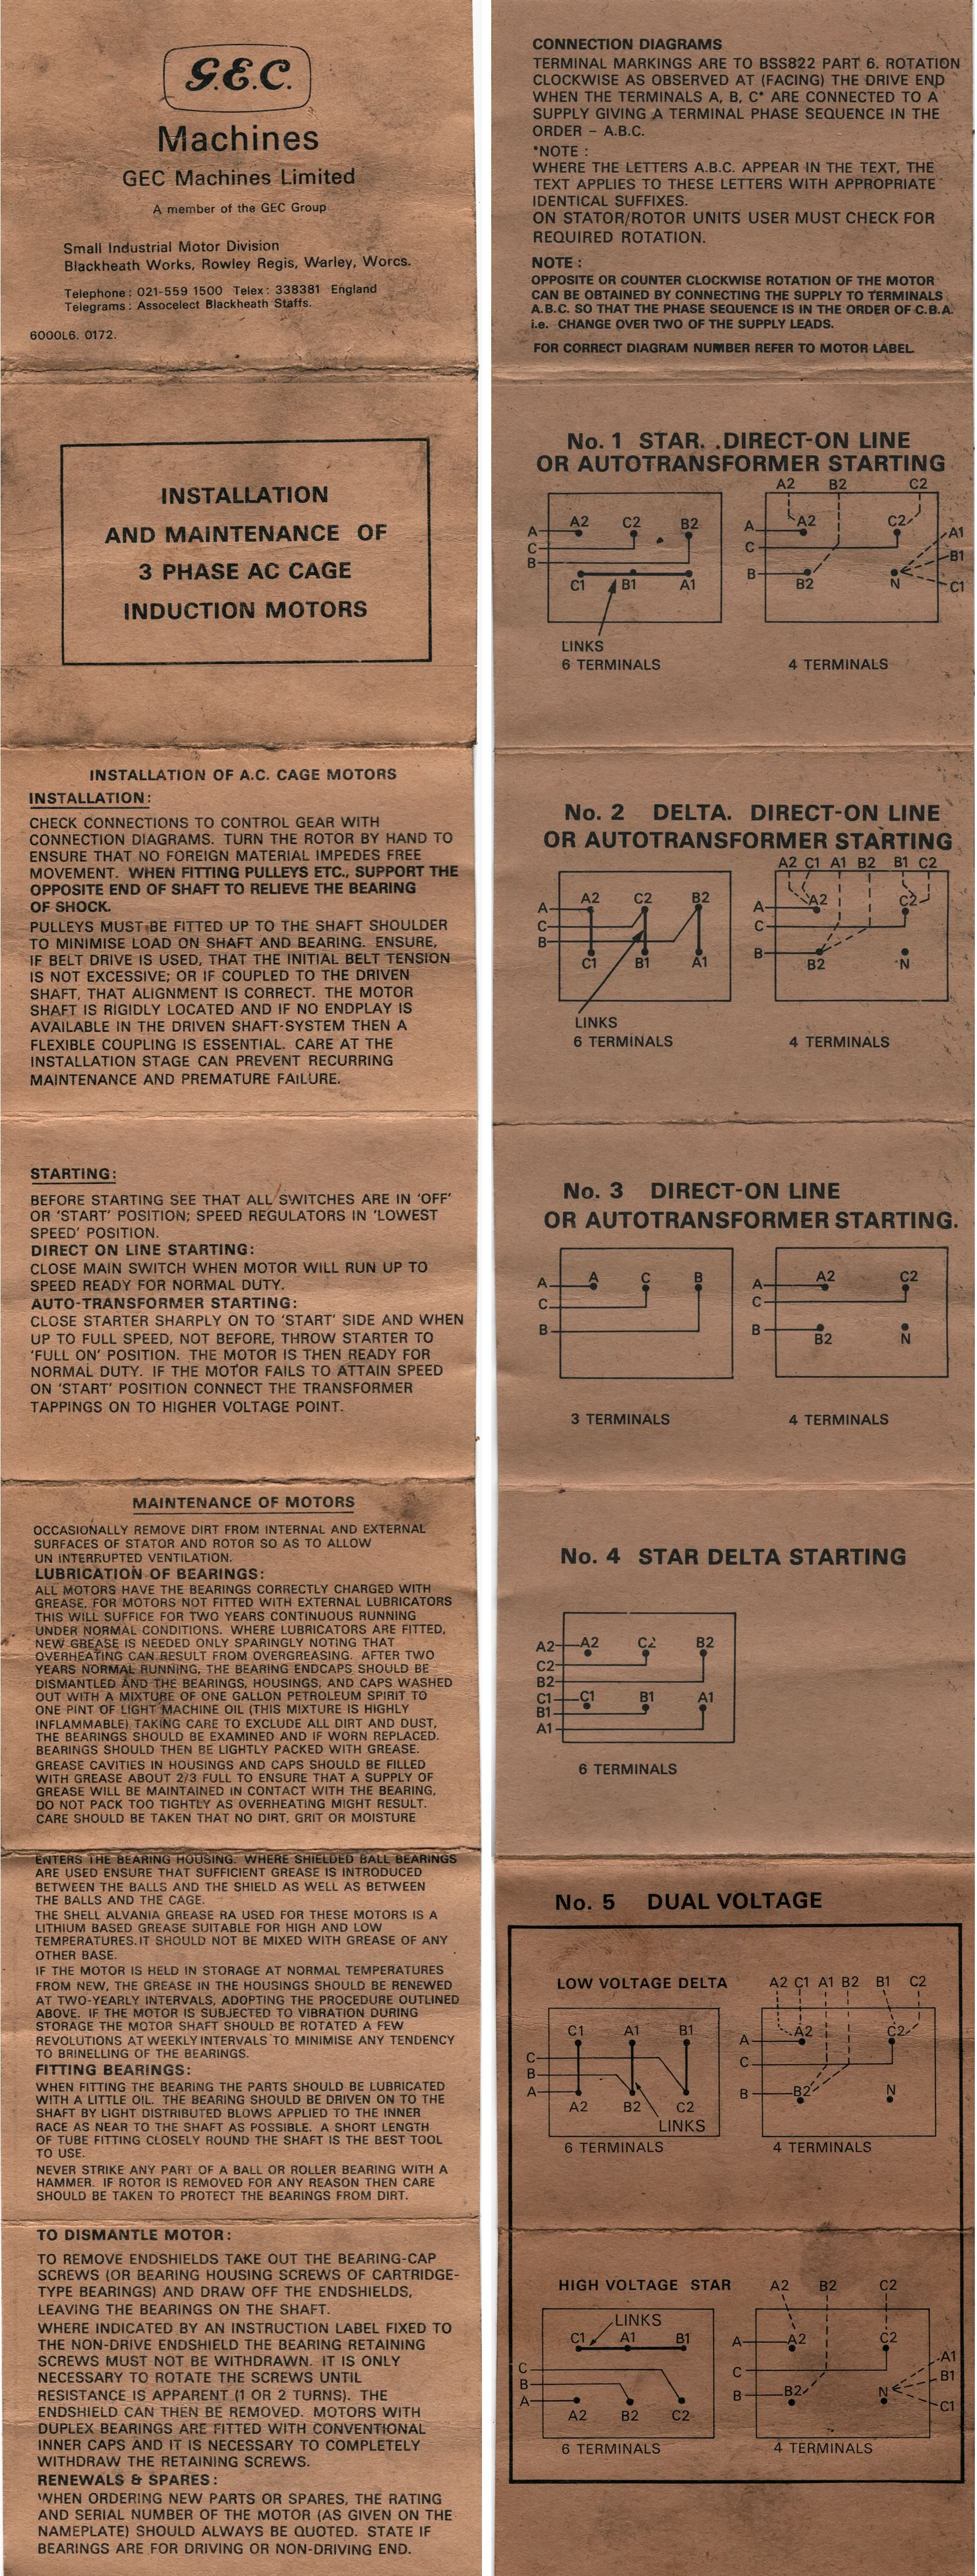 also this card with instructions about the gec three-phase motor